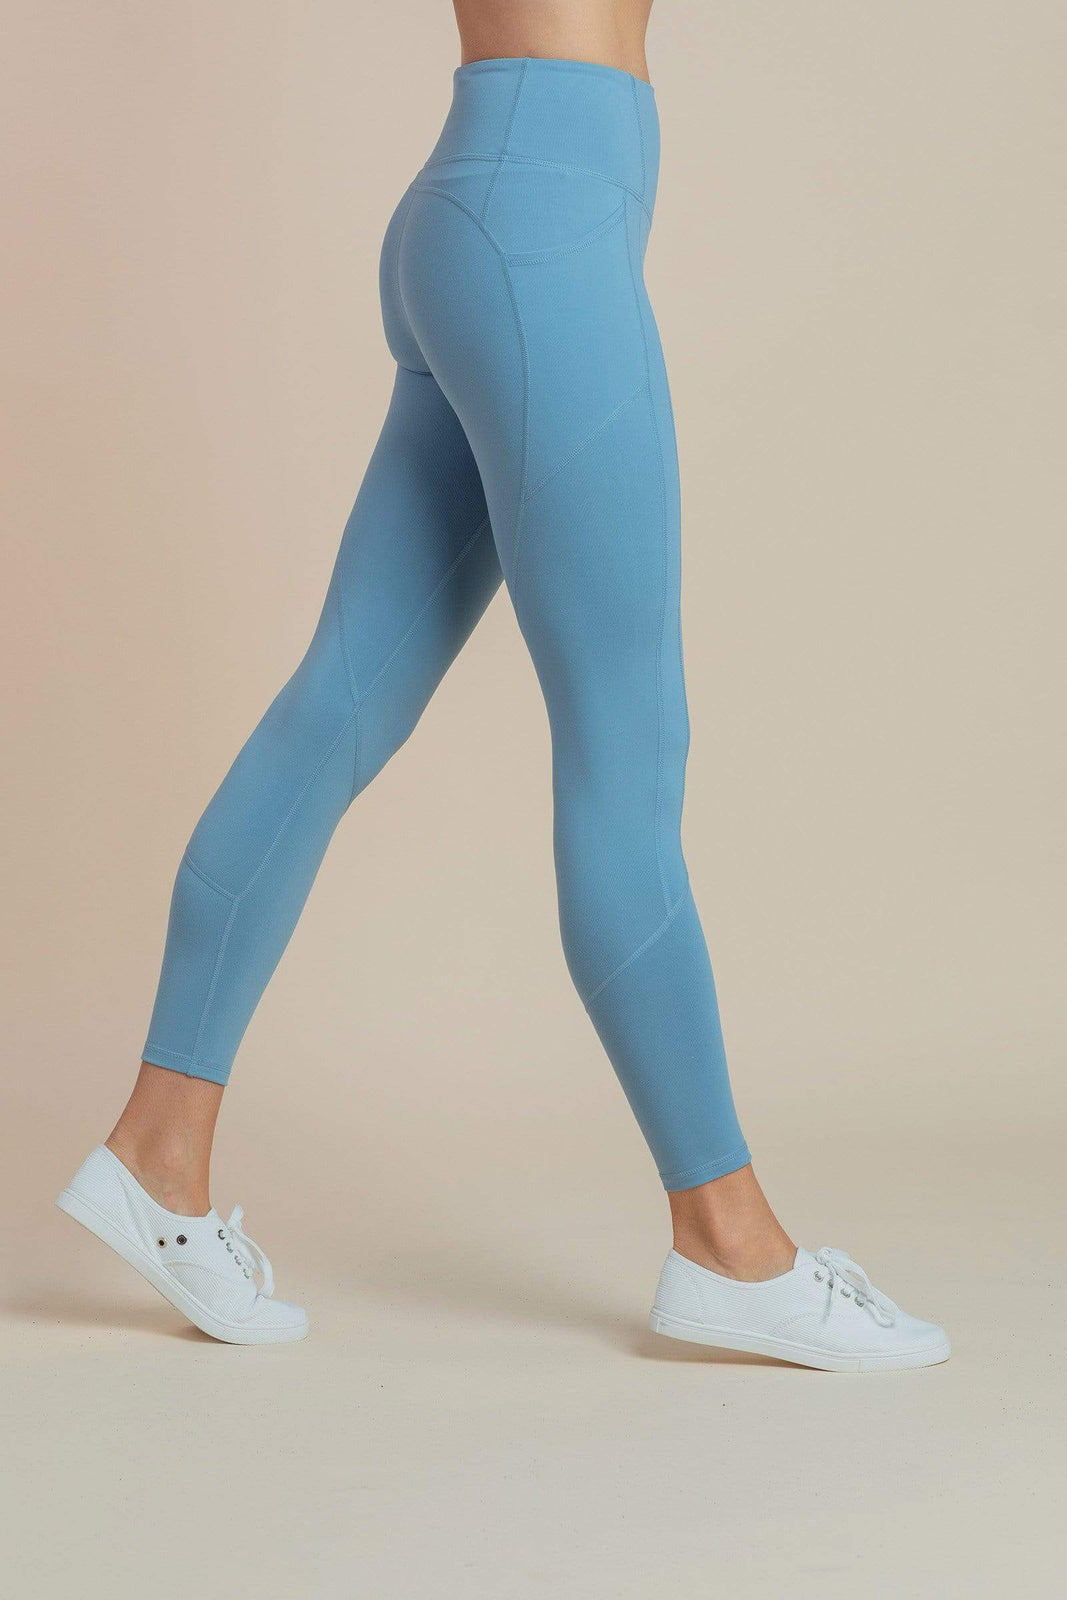 On-The-Go Leggings in Dusty Blue